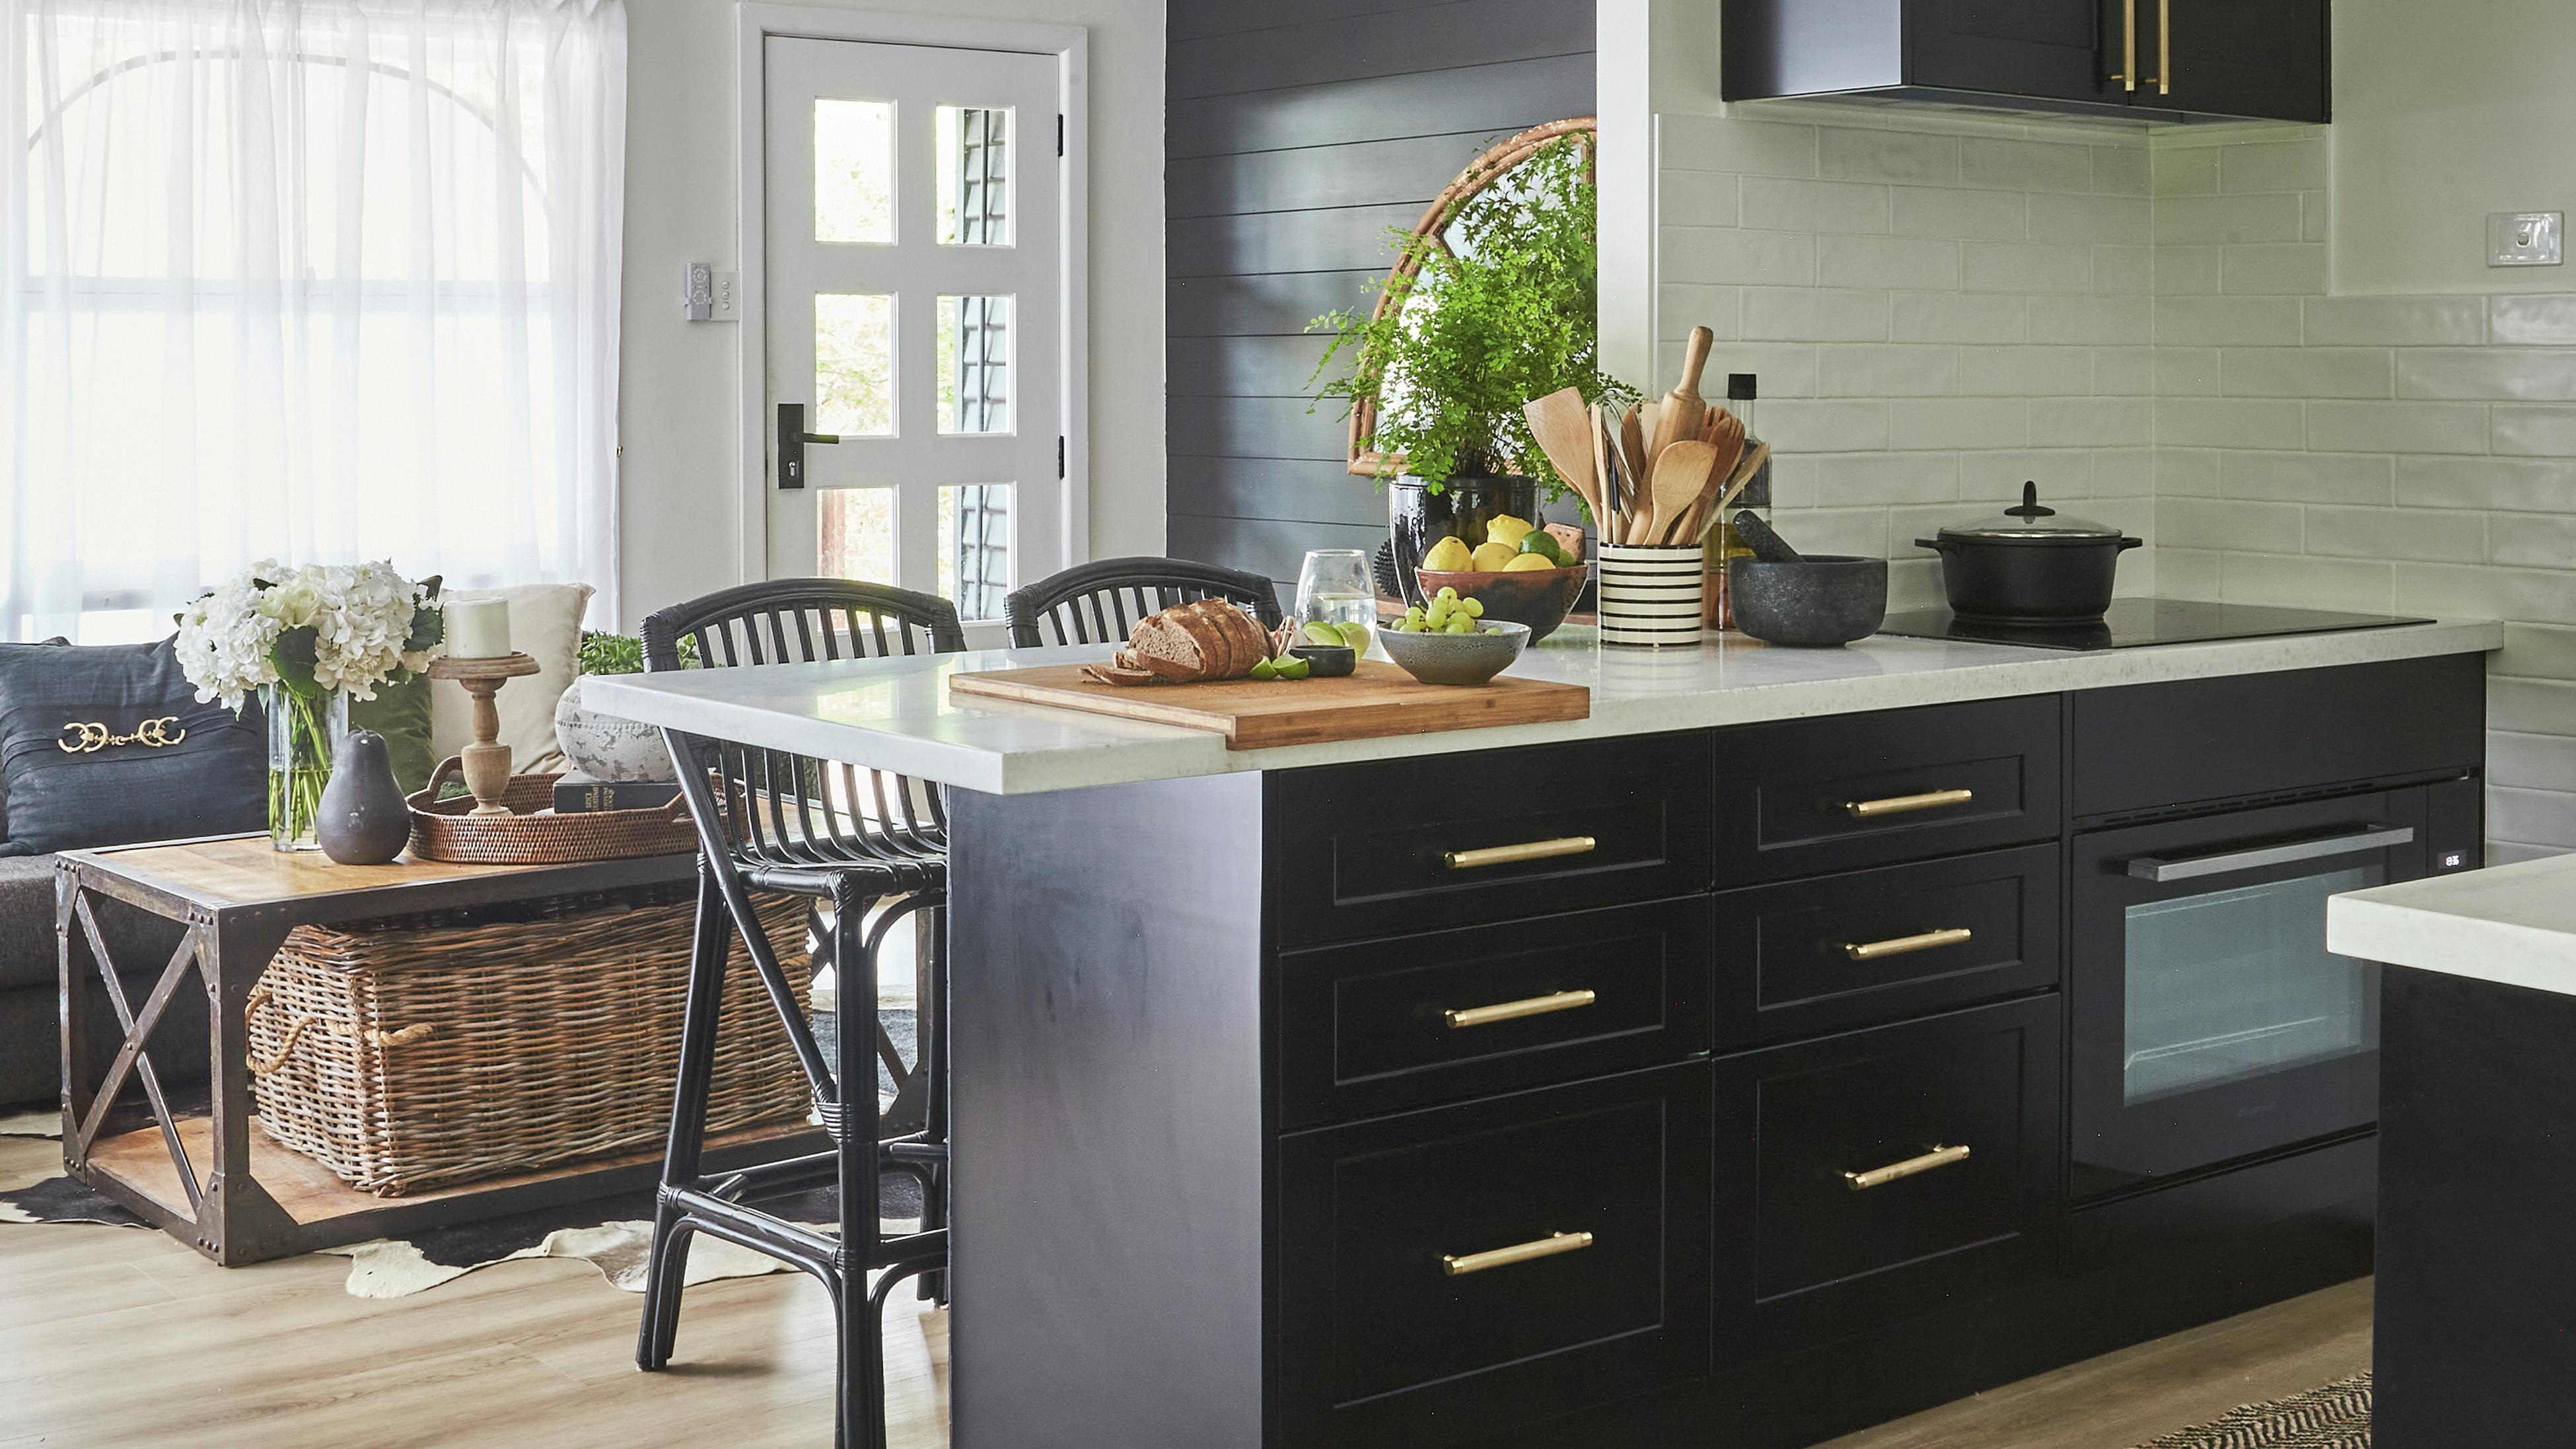 Modern monochrome kitchen with black cabinetry with gold coloured handles and timber look floorboards